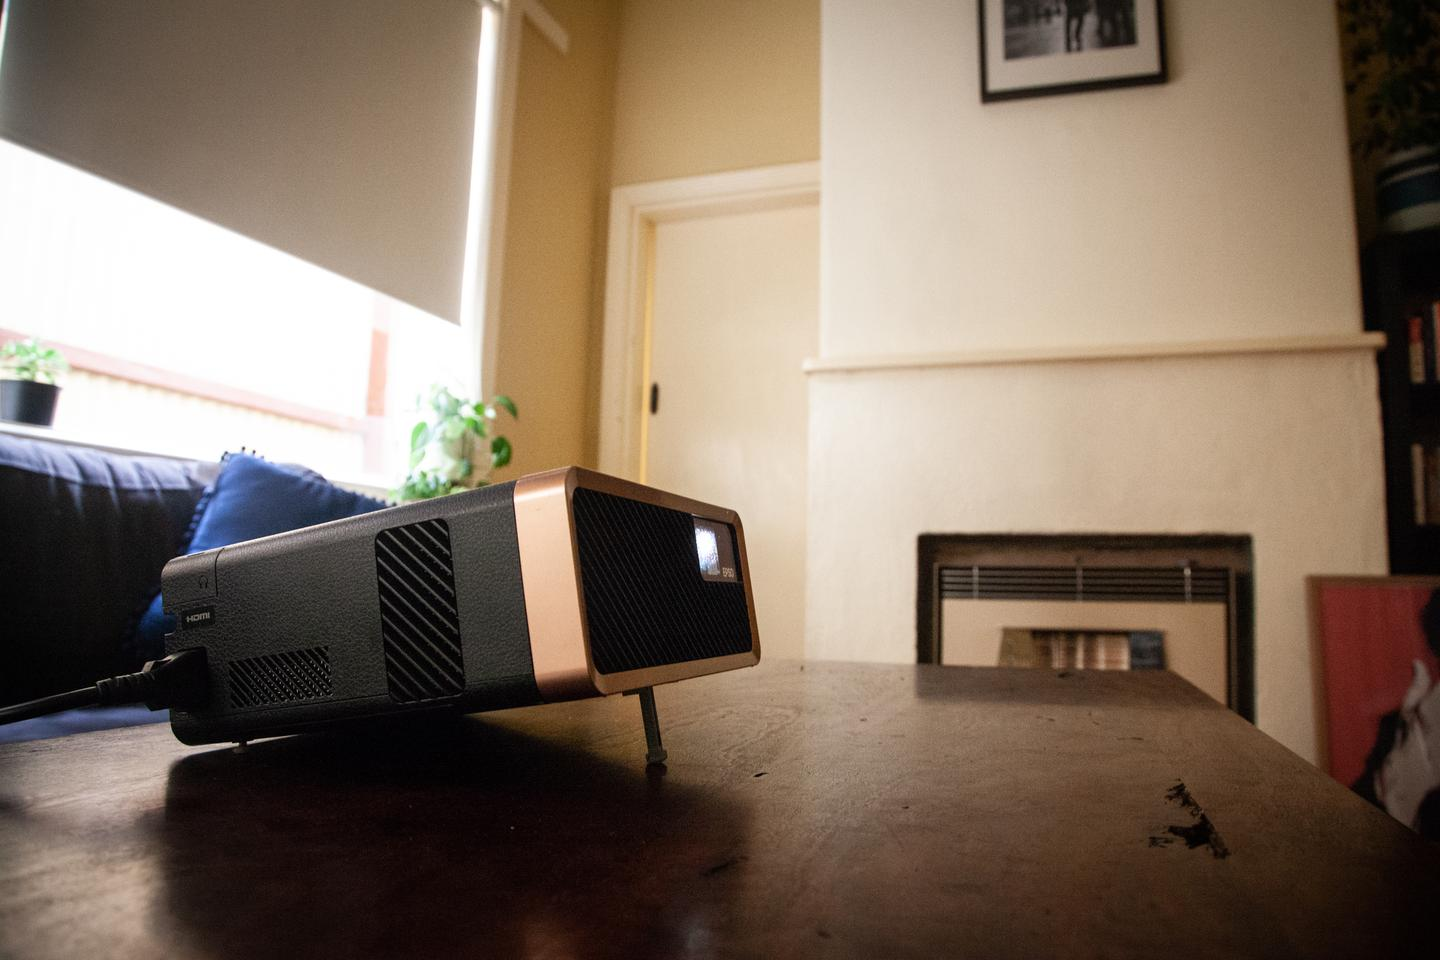 The Epson EF-100 portable projector makes a nice addition to coffee table, or wherever you choose to plonk it down